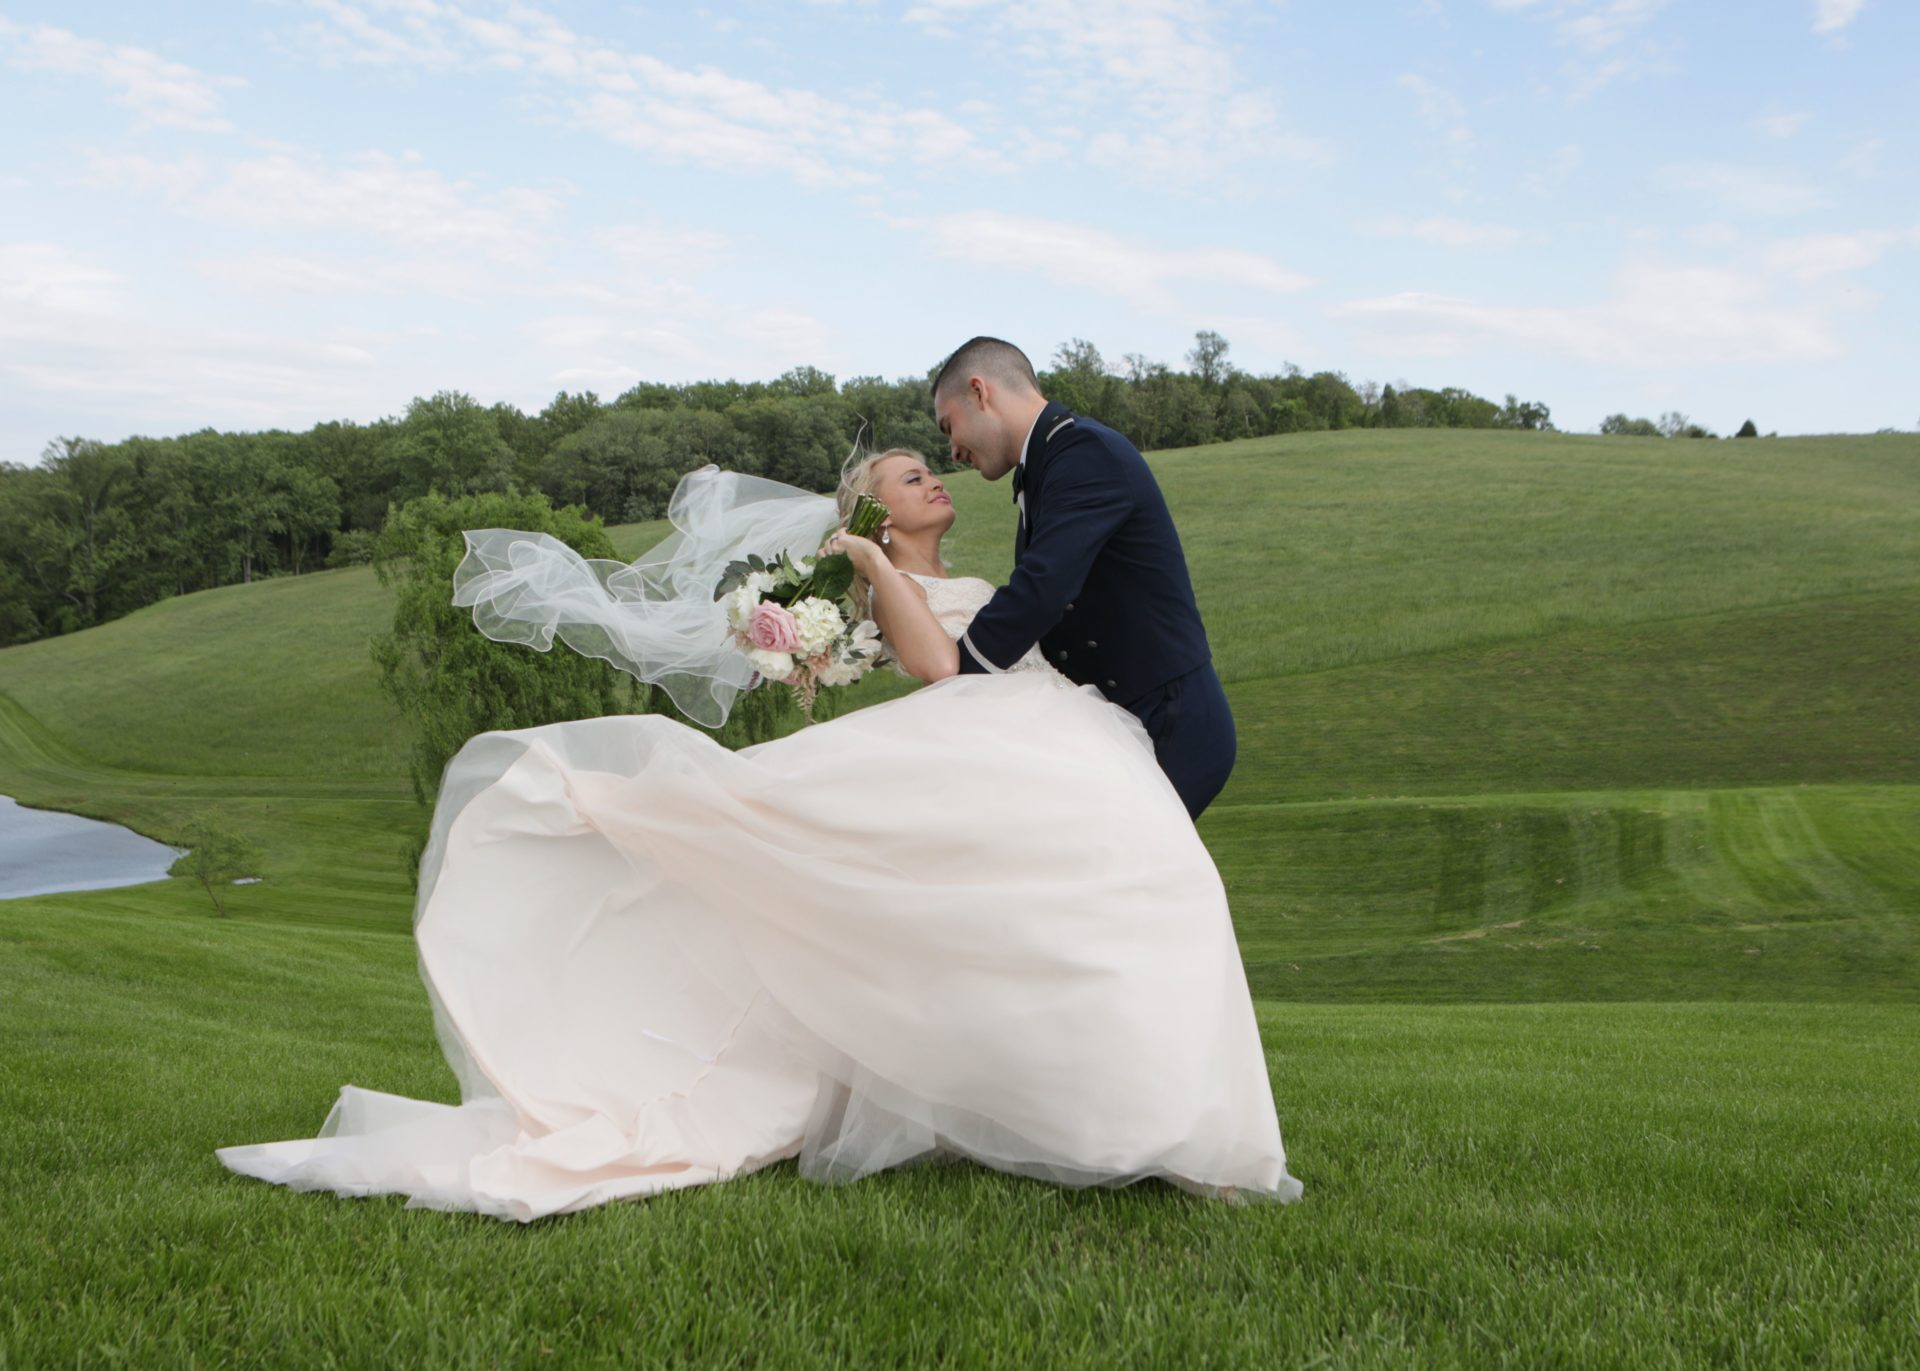 Bride and groom pose on lawn by pond at Morningside Inn with breeze lifting veil.